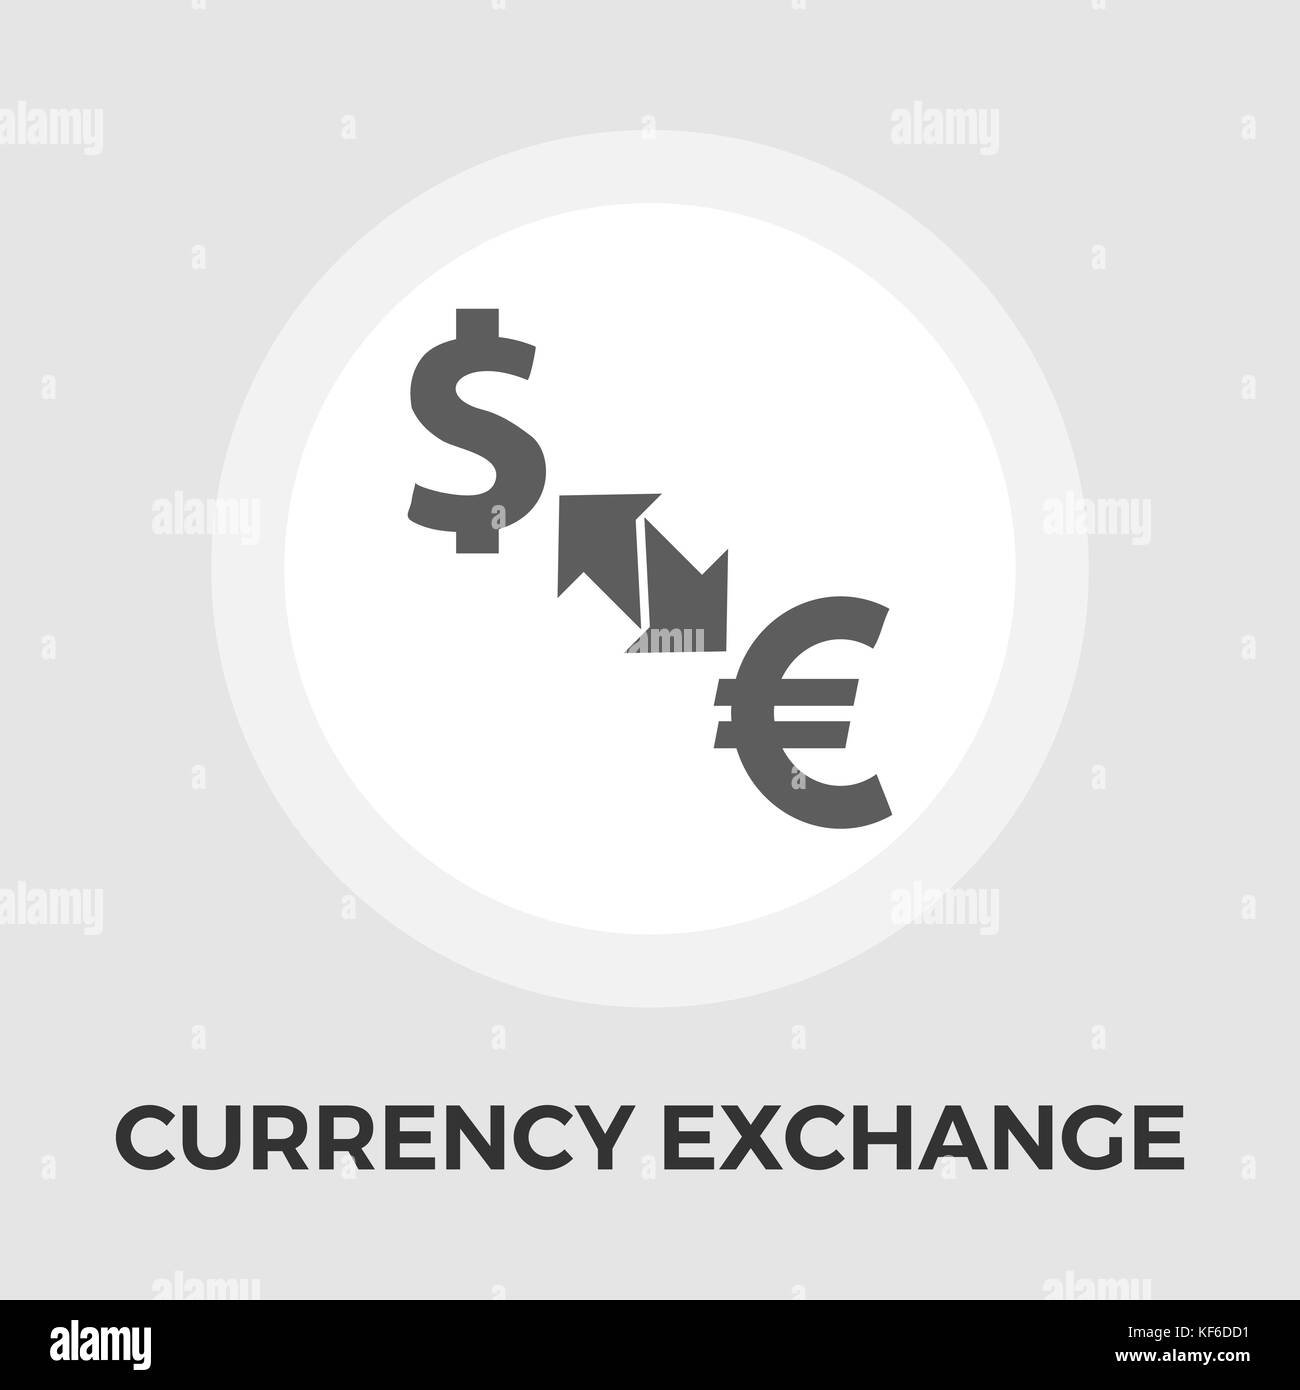 Currency exchange vector flat icon - Stock Image